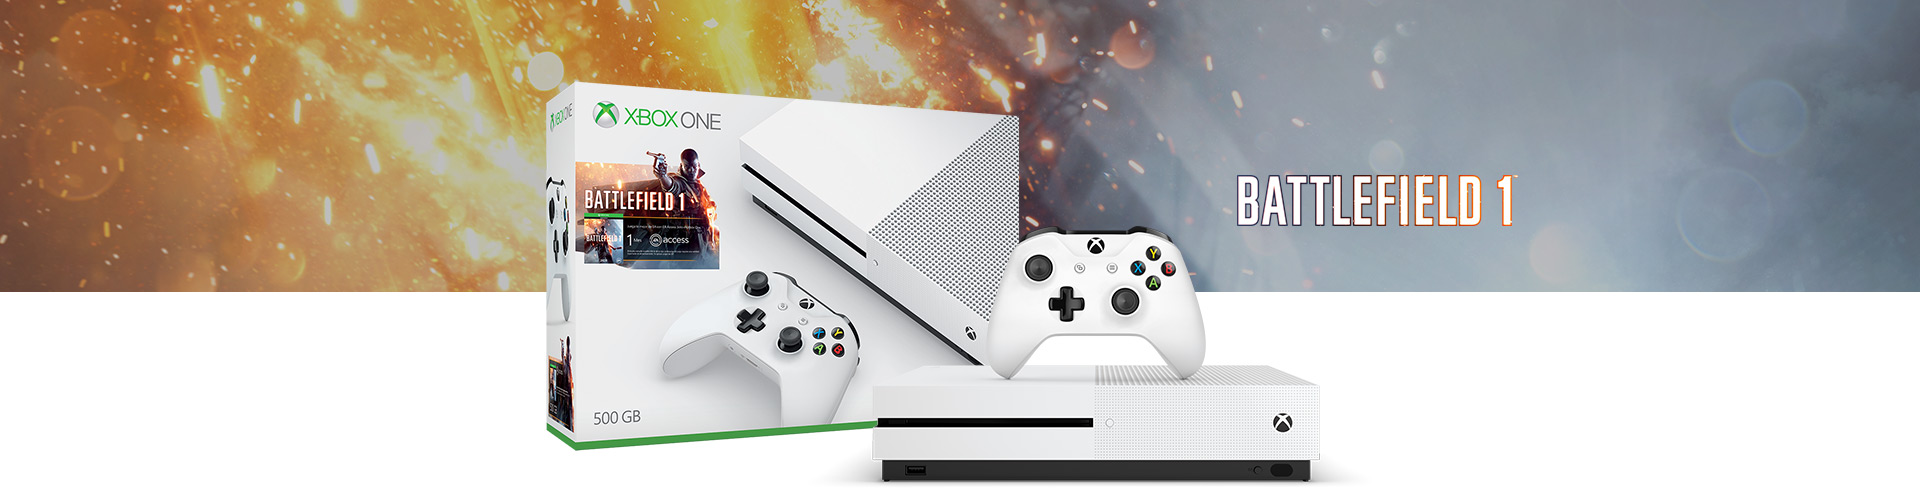 Image result for Xbox One S 1TB Battlefield 1 bundle WHITE